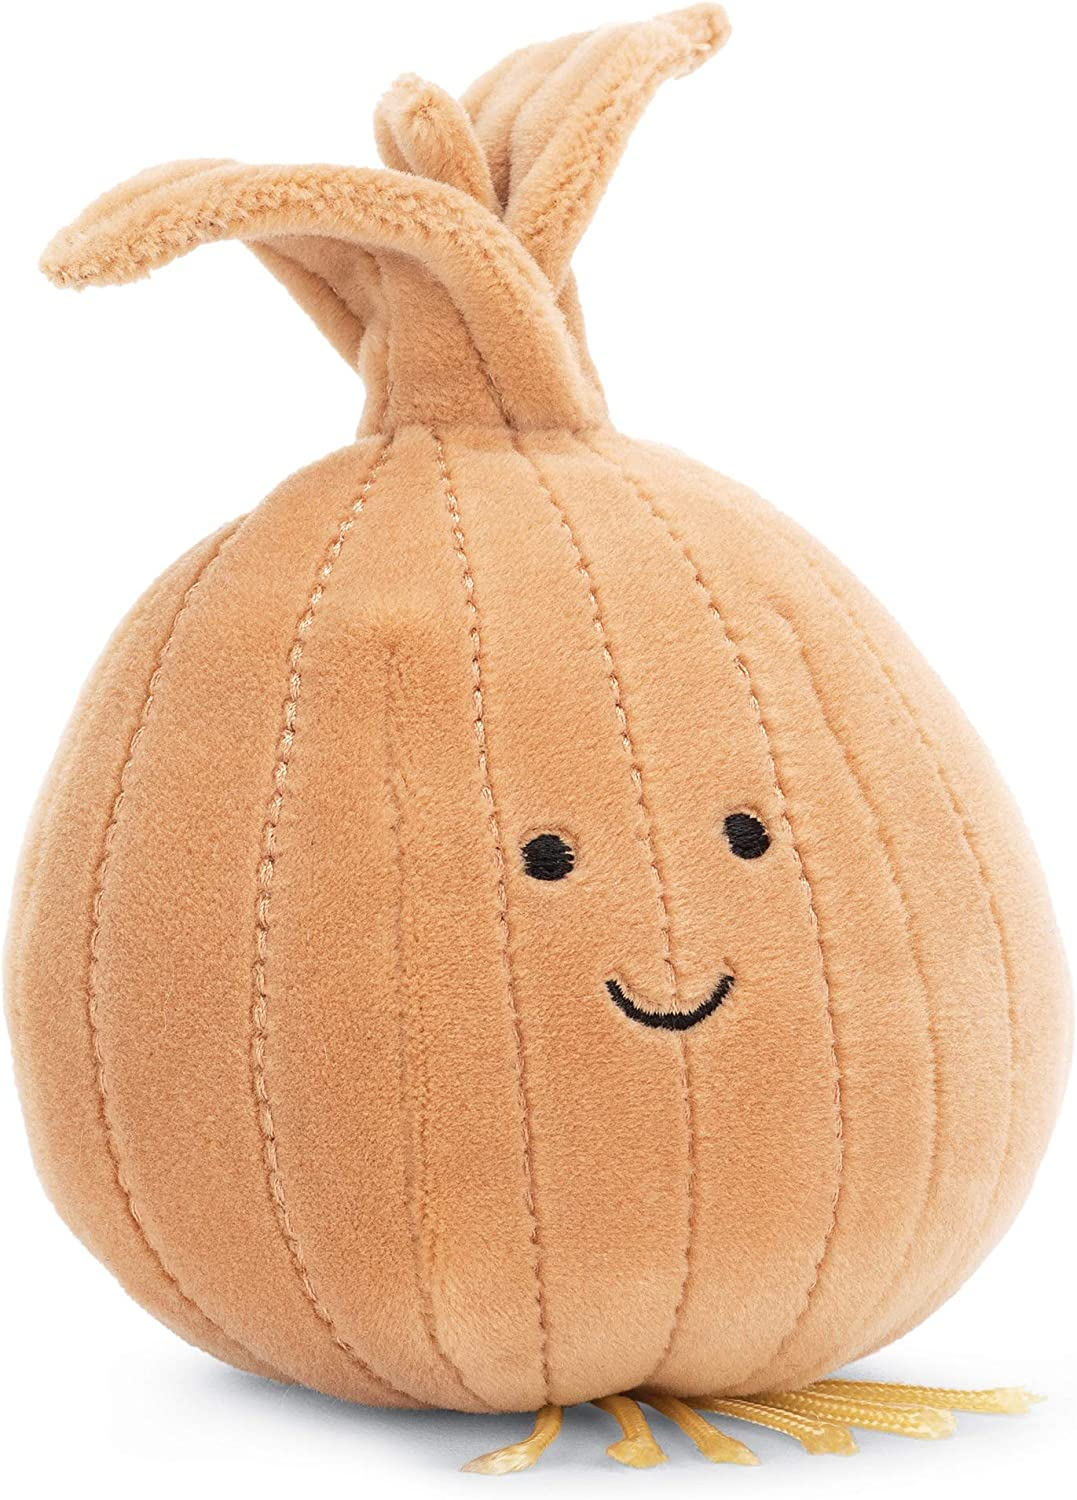 Jellycat Vivacious Vegetables Onion Food Plush, 5 inches